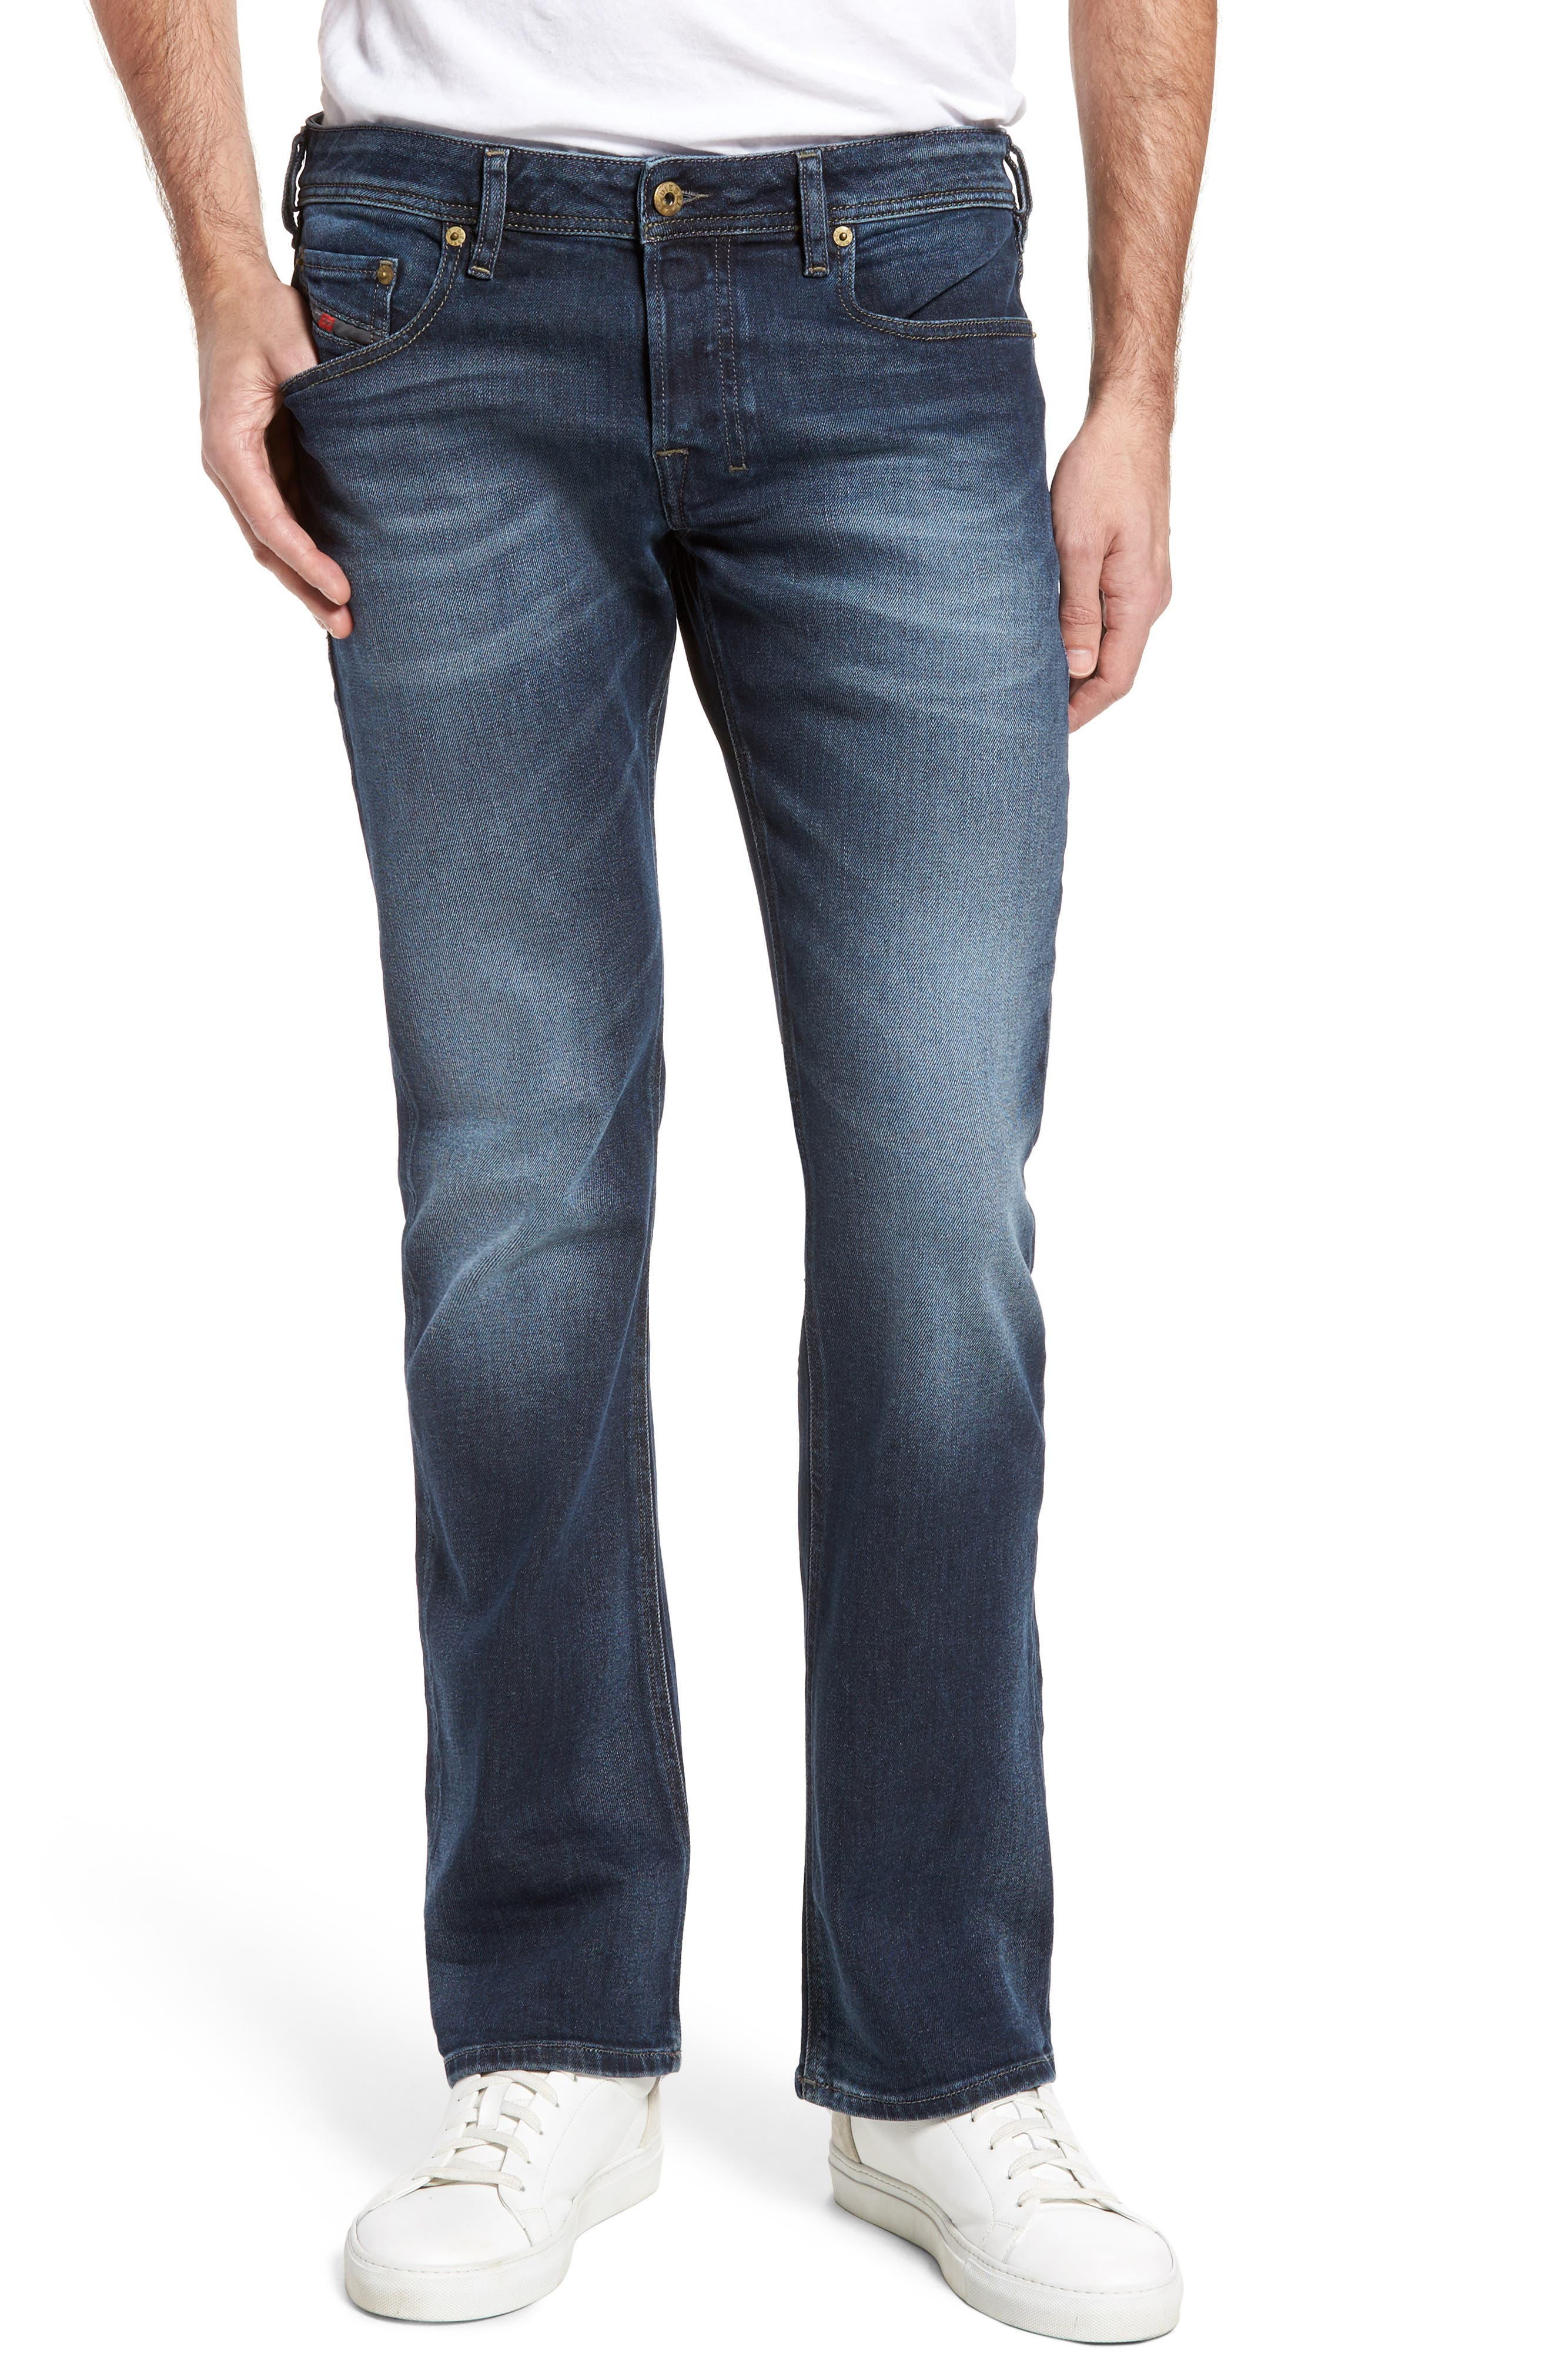 Alternate Image 1 Selected - DIESEL® Zatiny Bootcut Jeans